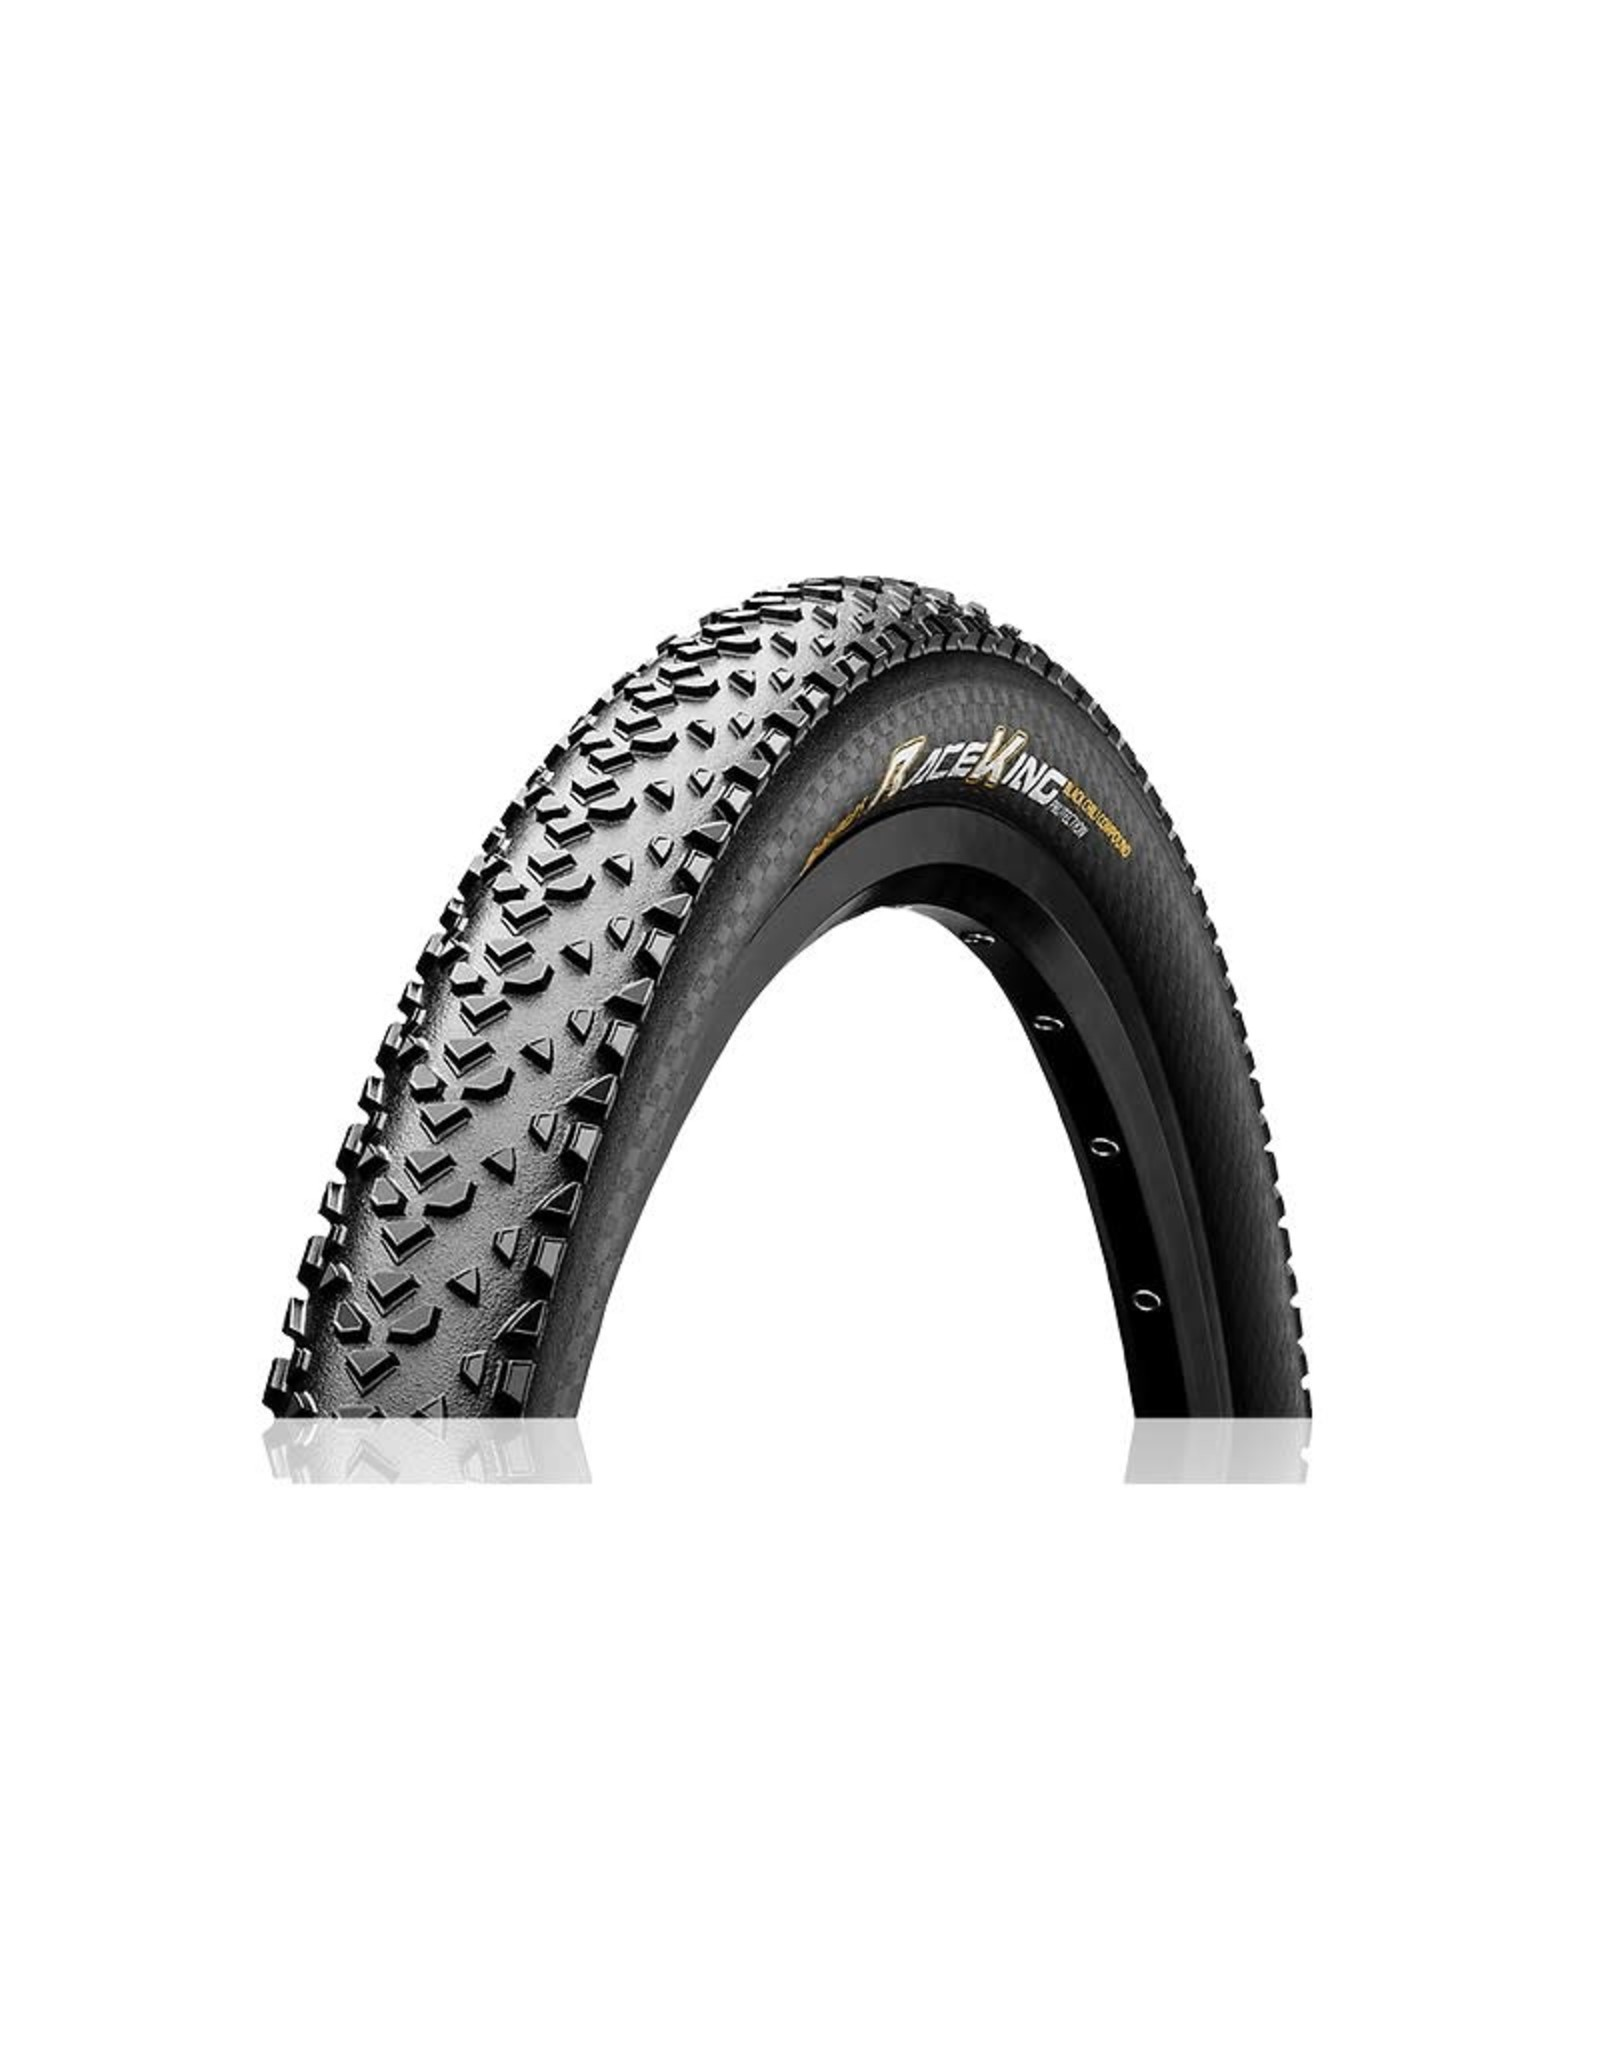 Continental Tire Continental Race King 27.5 x 2.2 Fold ProTection Black Chili